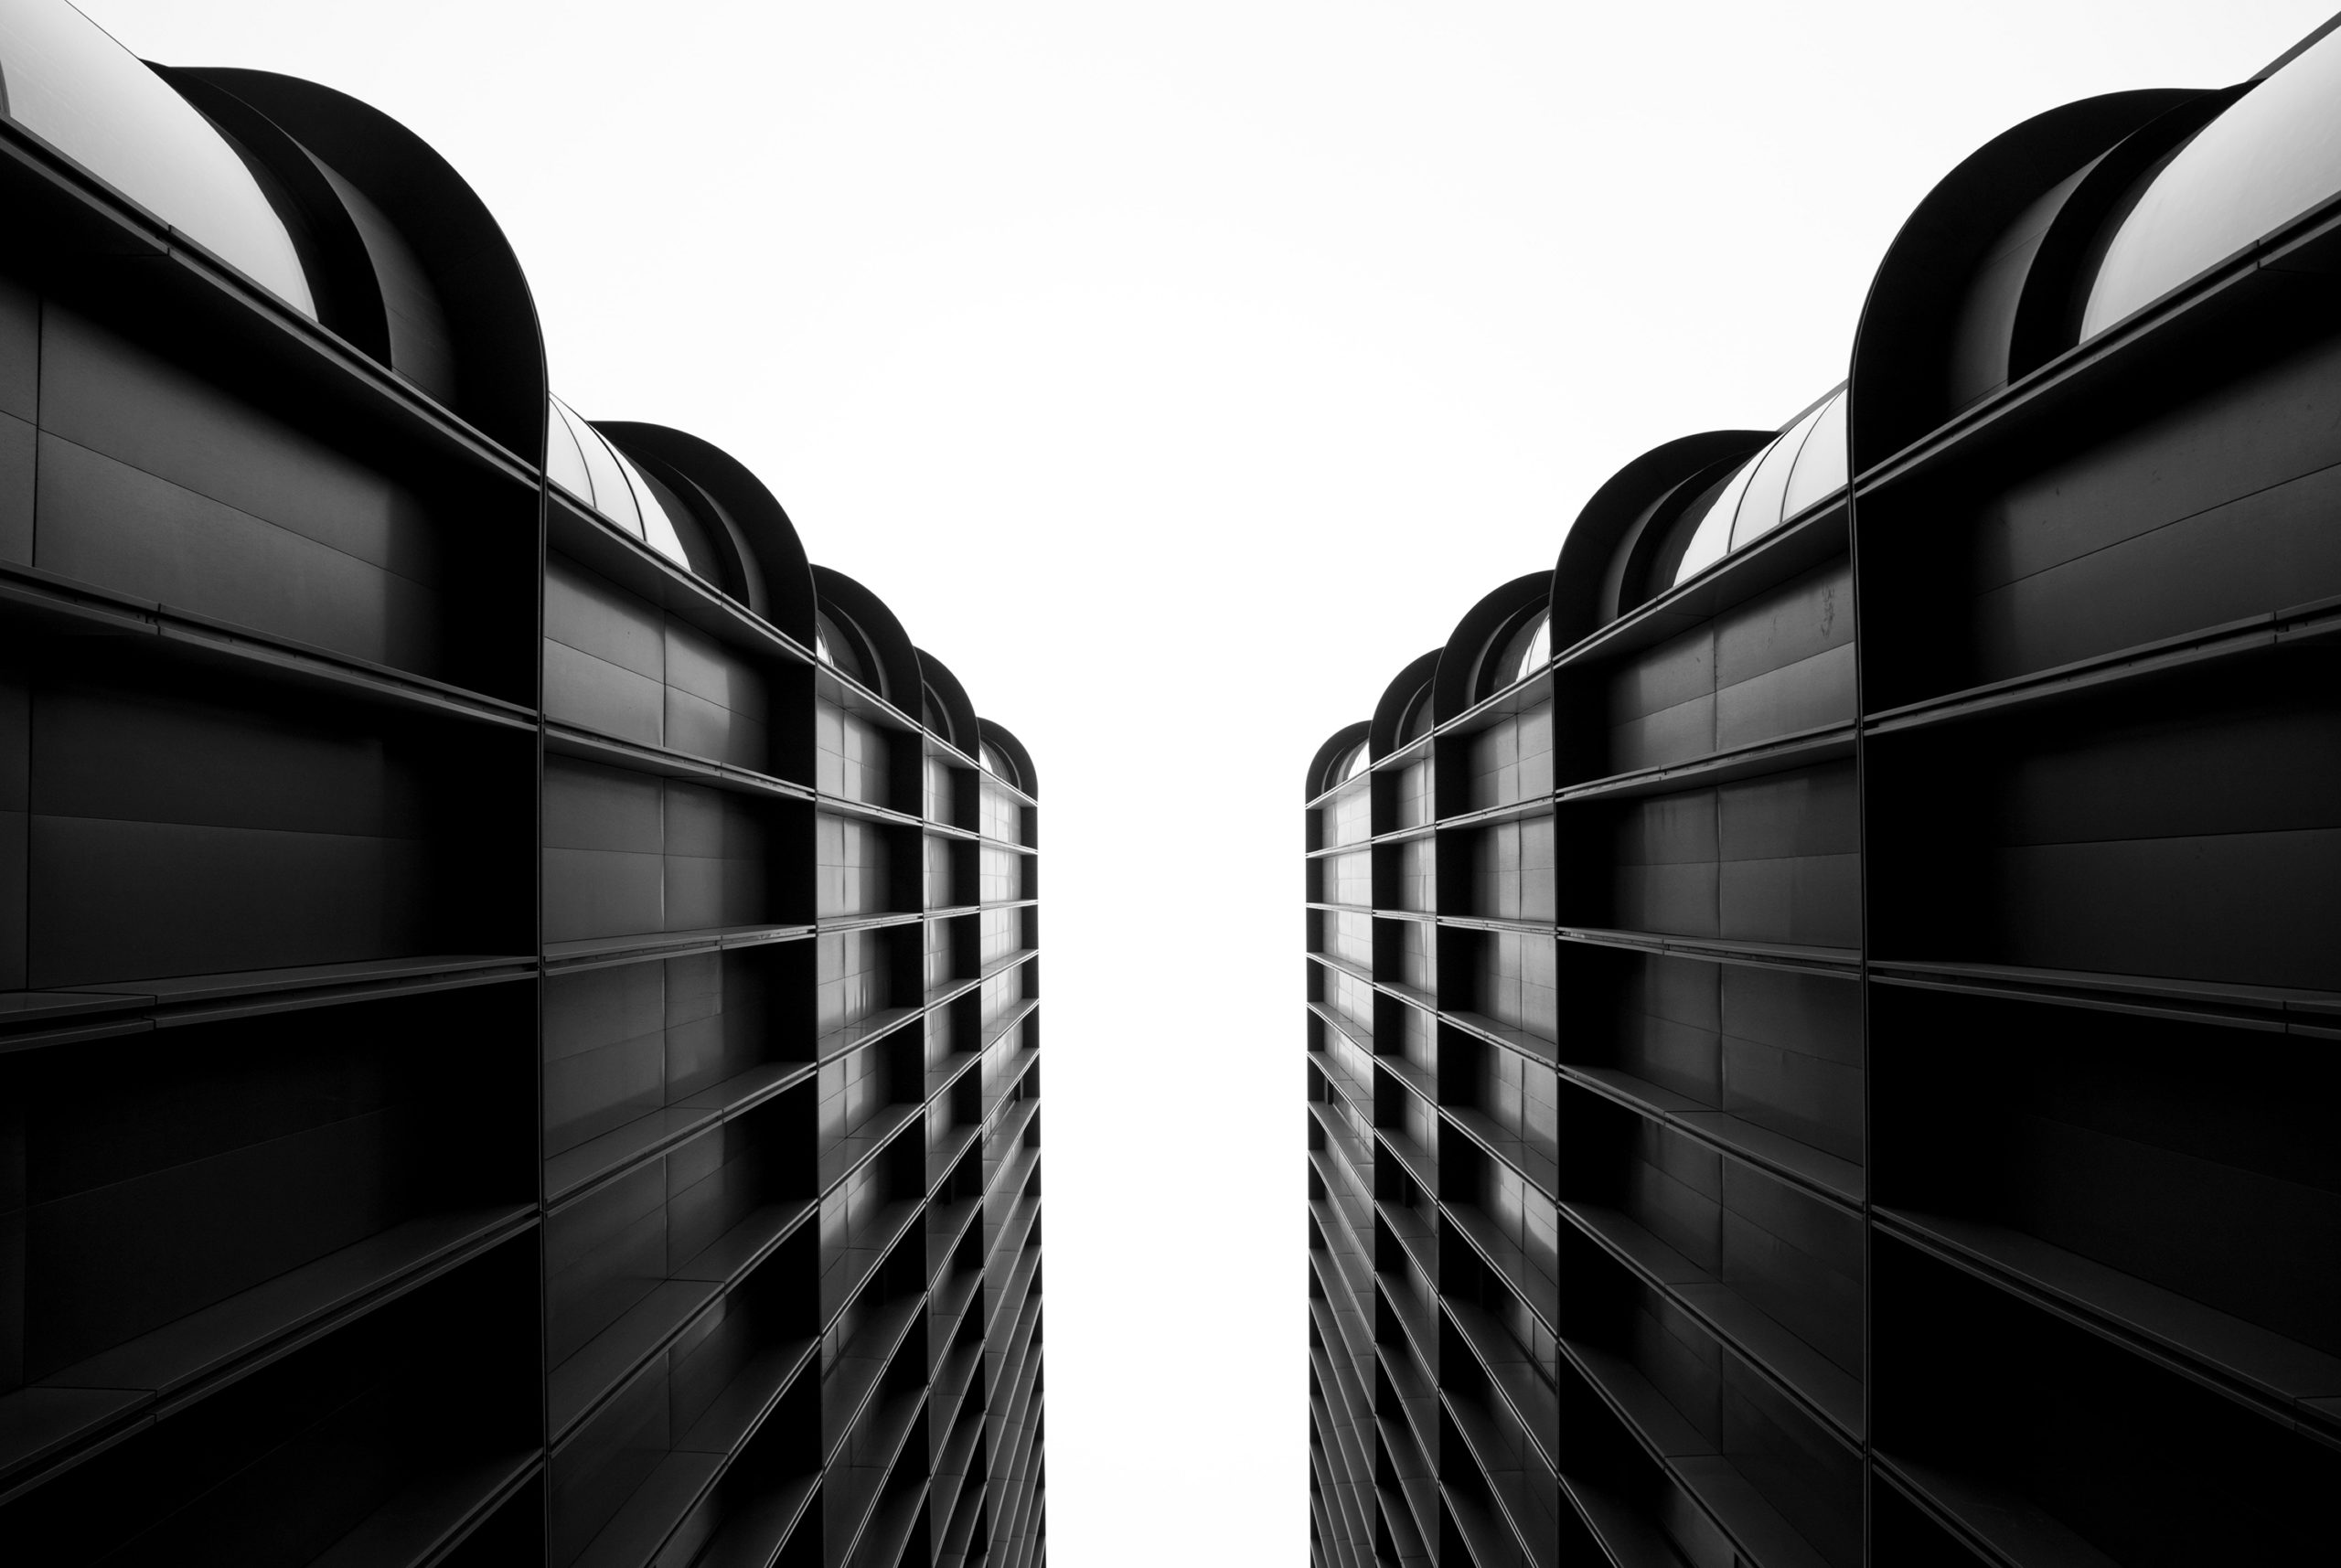 Black and white image between two buildings seen from below.